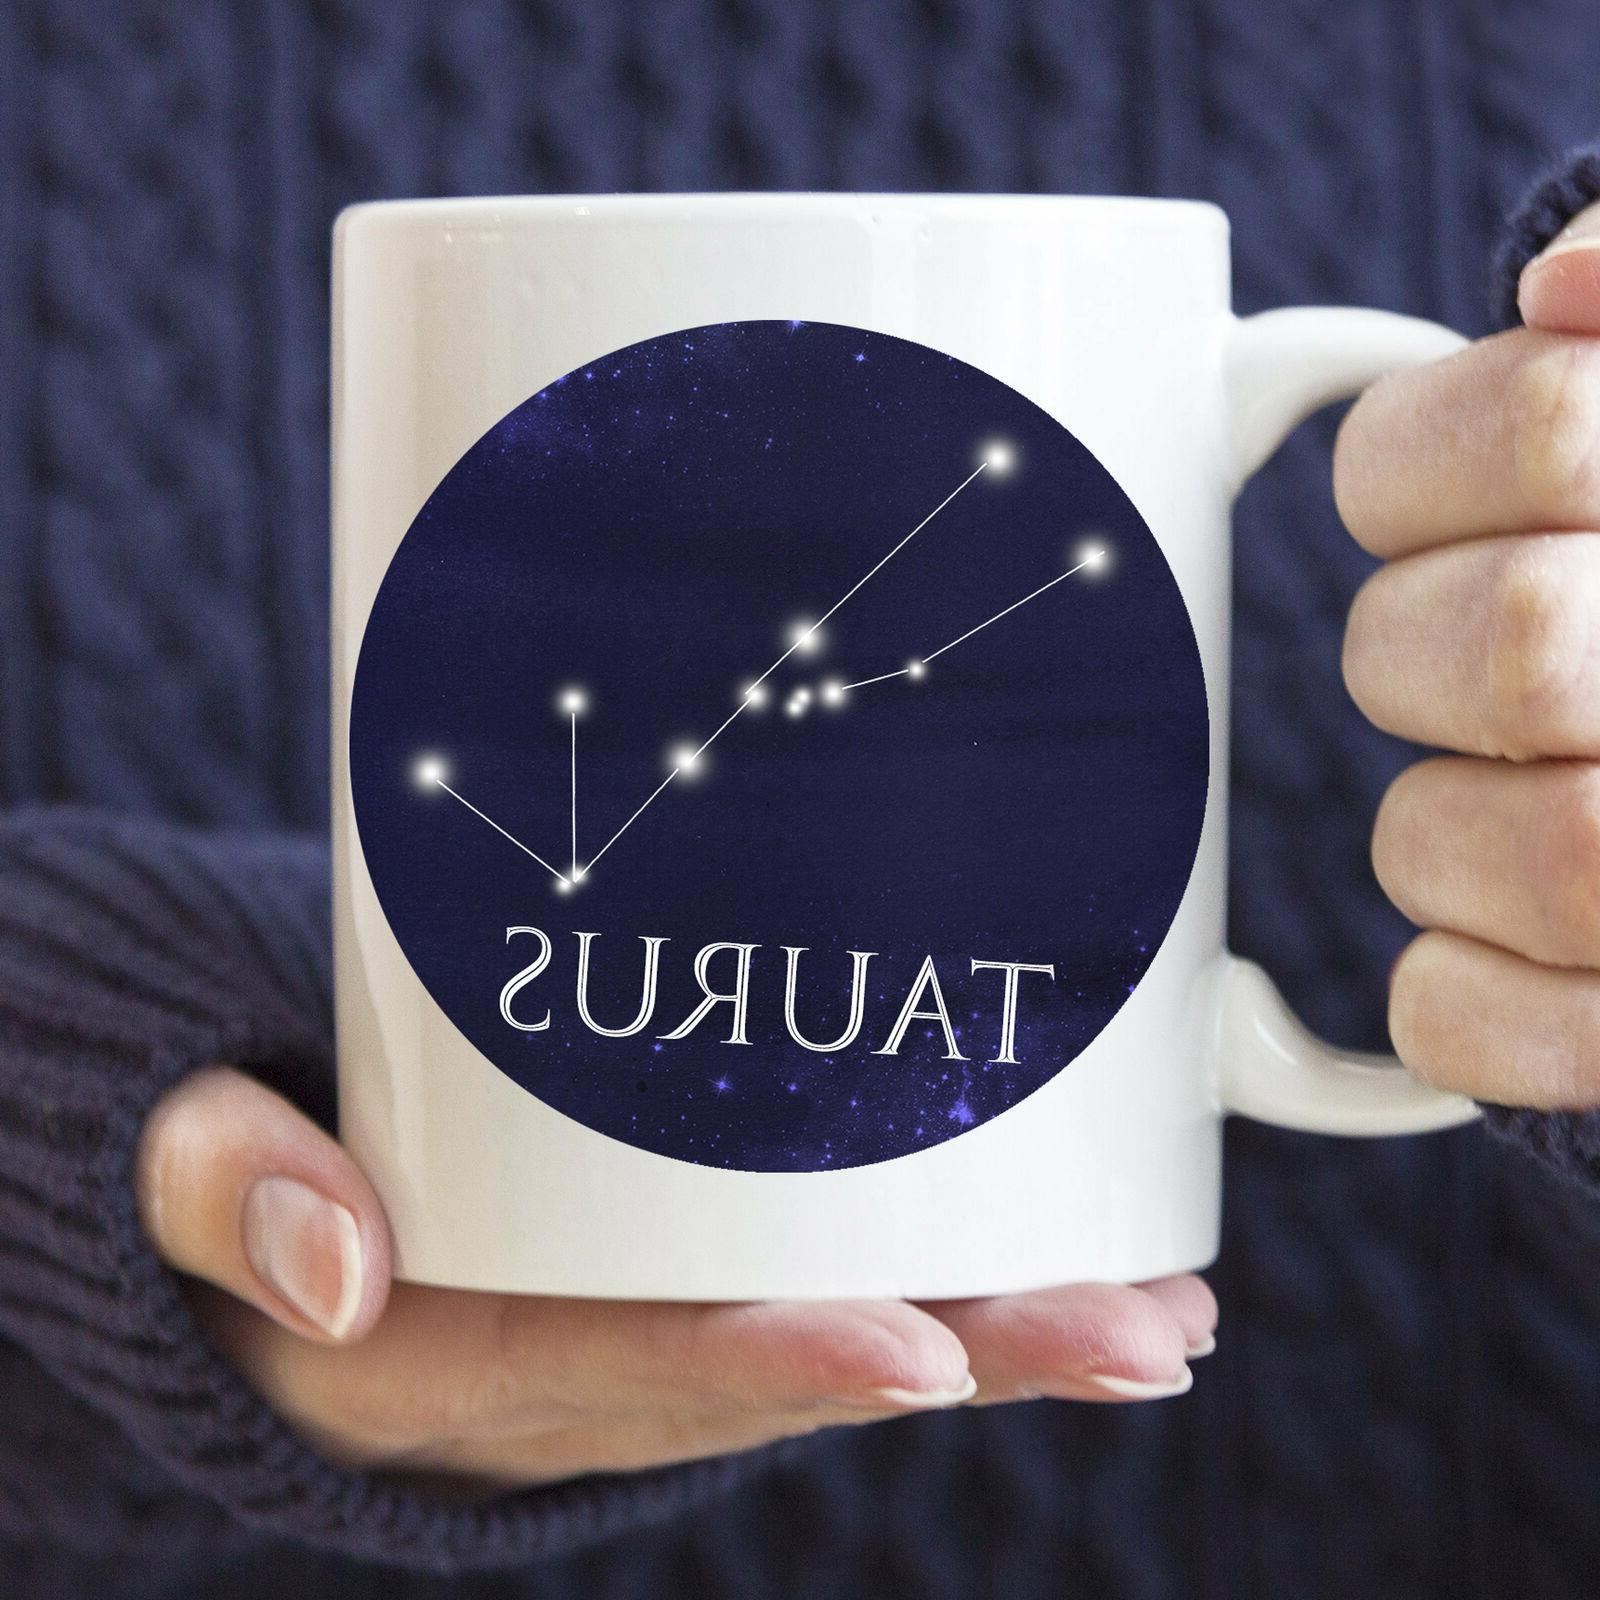 Celestial Taurus Constellation Coffee Mug Microwave And Dish